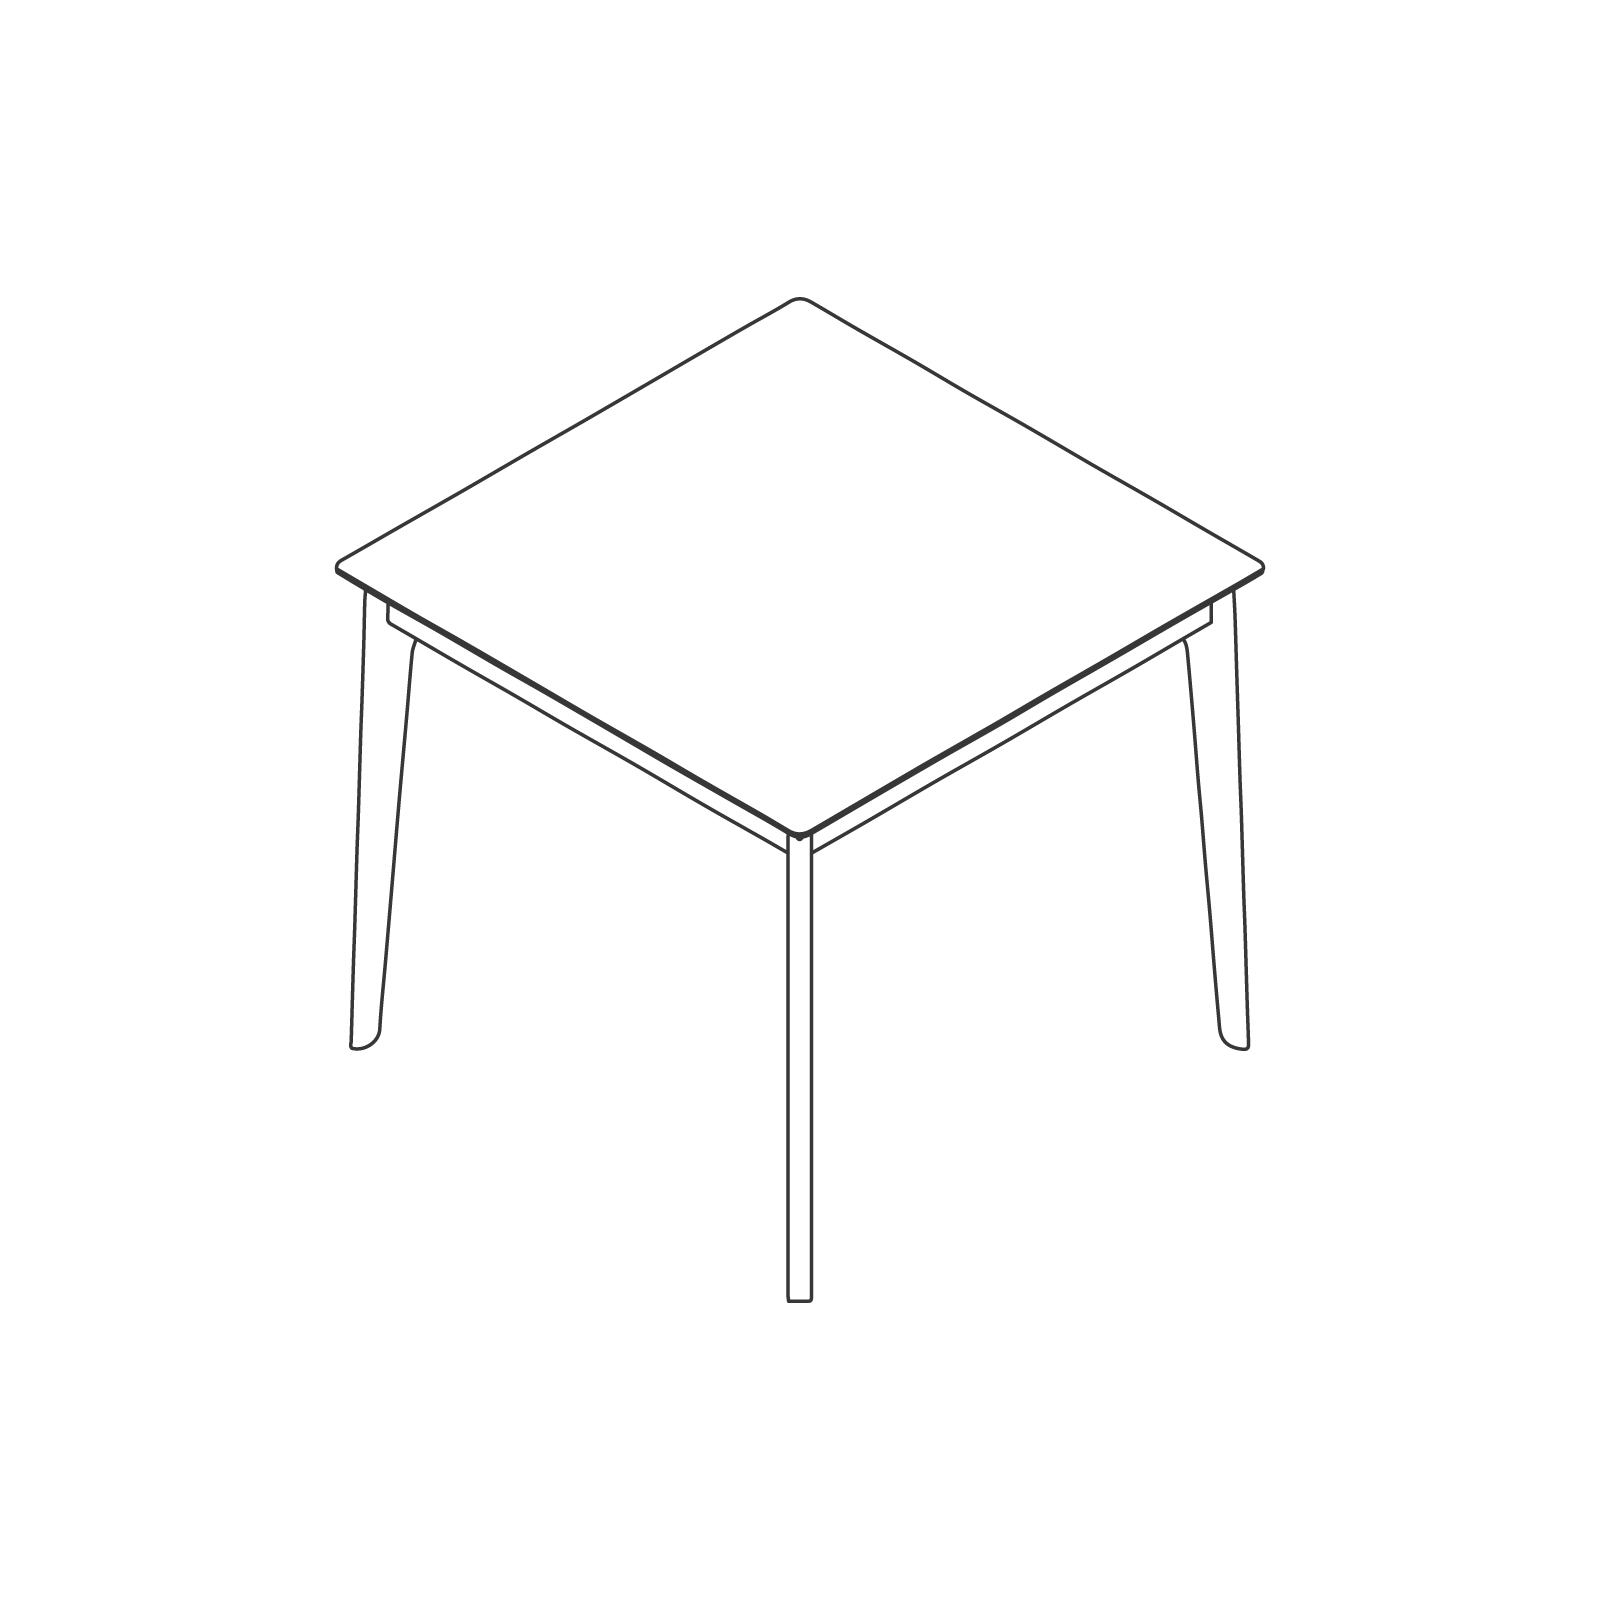 A line drawing of Dalby Café Table–Square.